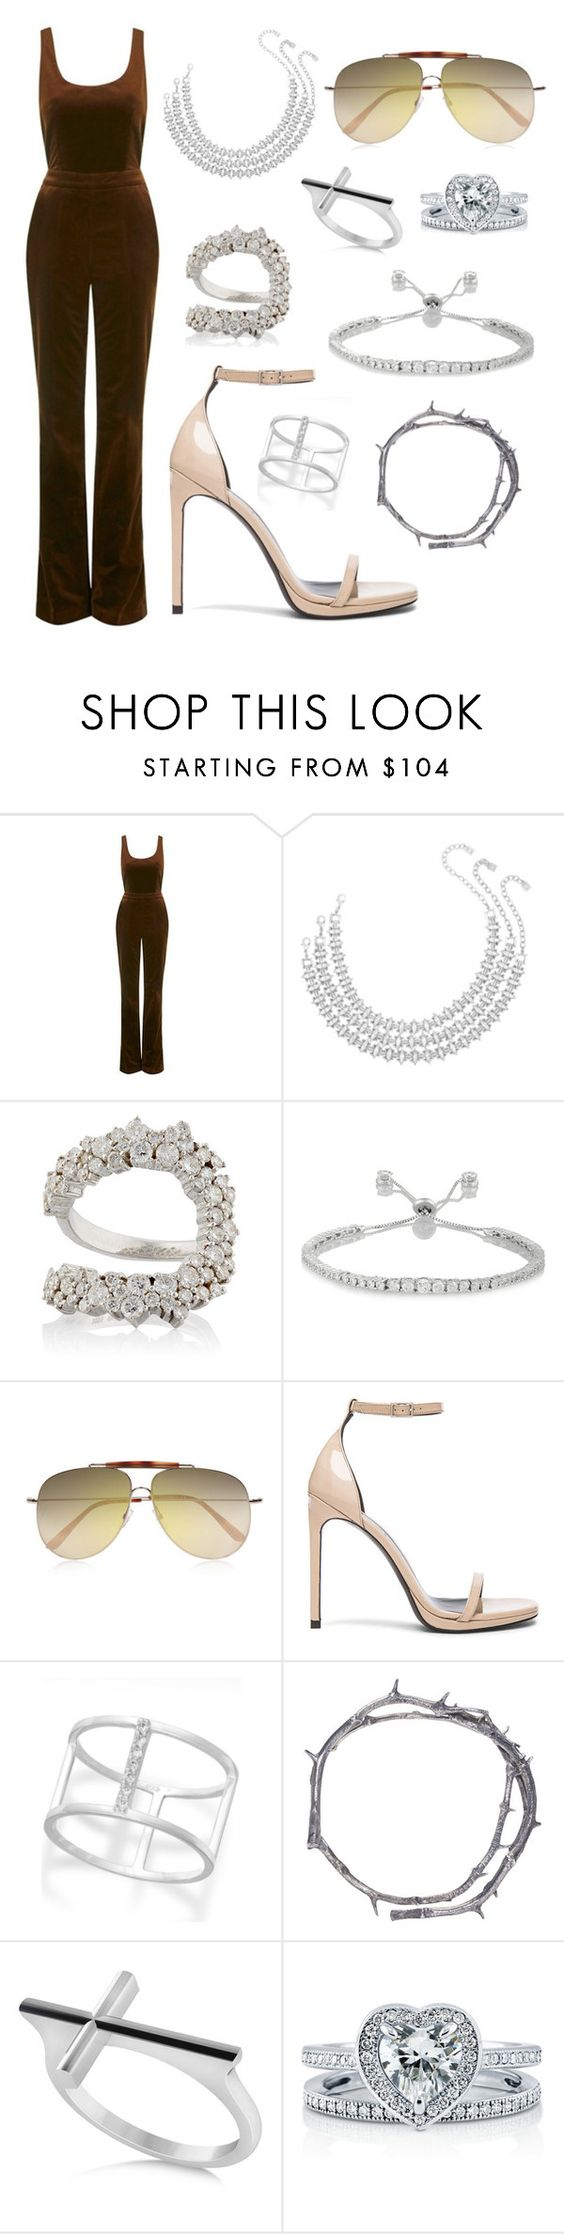 """""""Untitled #339"""" by lindsaysoares ❤ liked on Polyvore featuring Topshop Unique, DANNIJO, Ana Khouri, Kenneth Jay Lane, Valentino, Yves Saint Laurent, Studio Silver, Pearls Before Swine, Allurez and BERRICLE"""